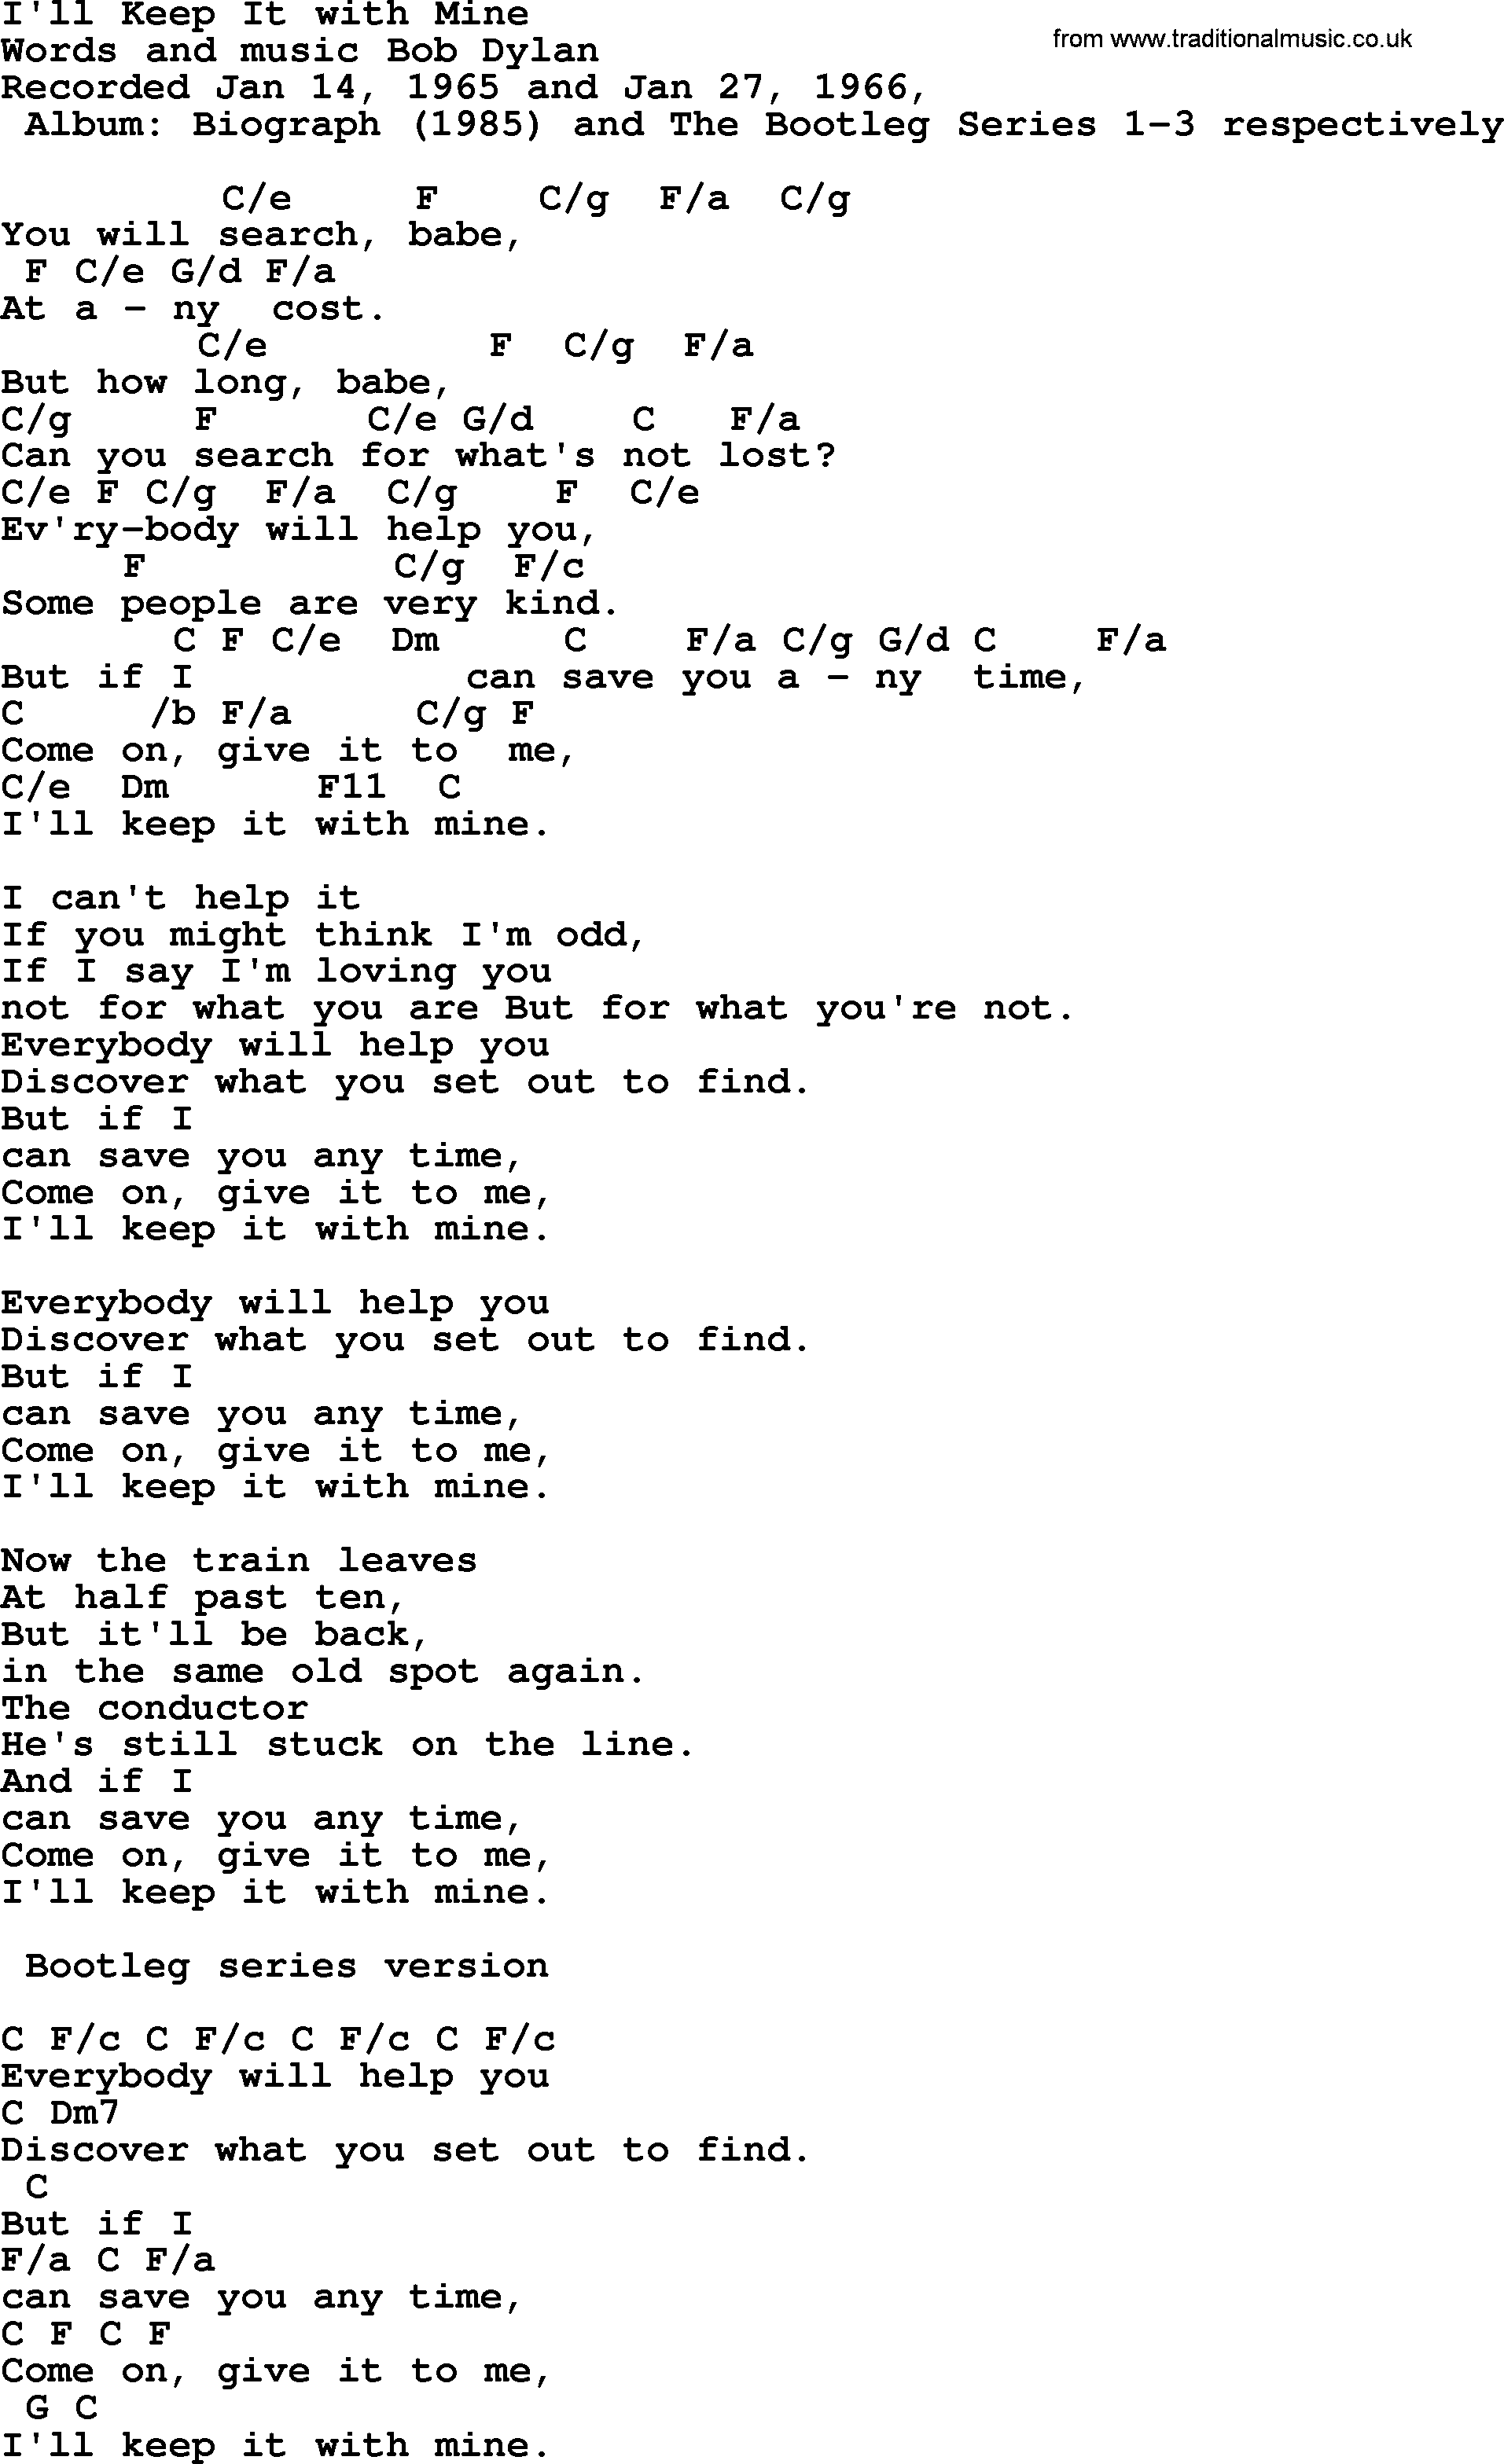 Bob Dylan Song Ill Keep It With Mine Lyrics And Chords